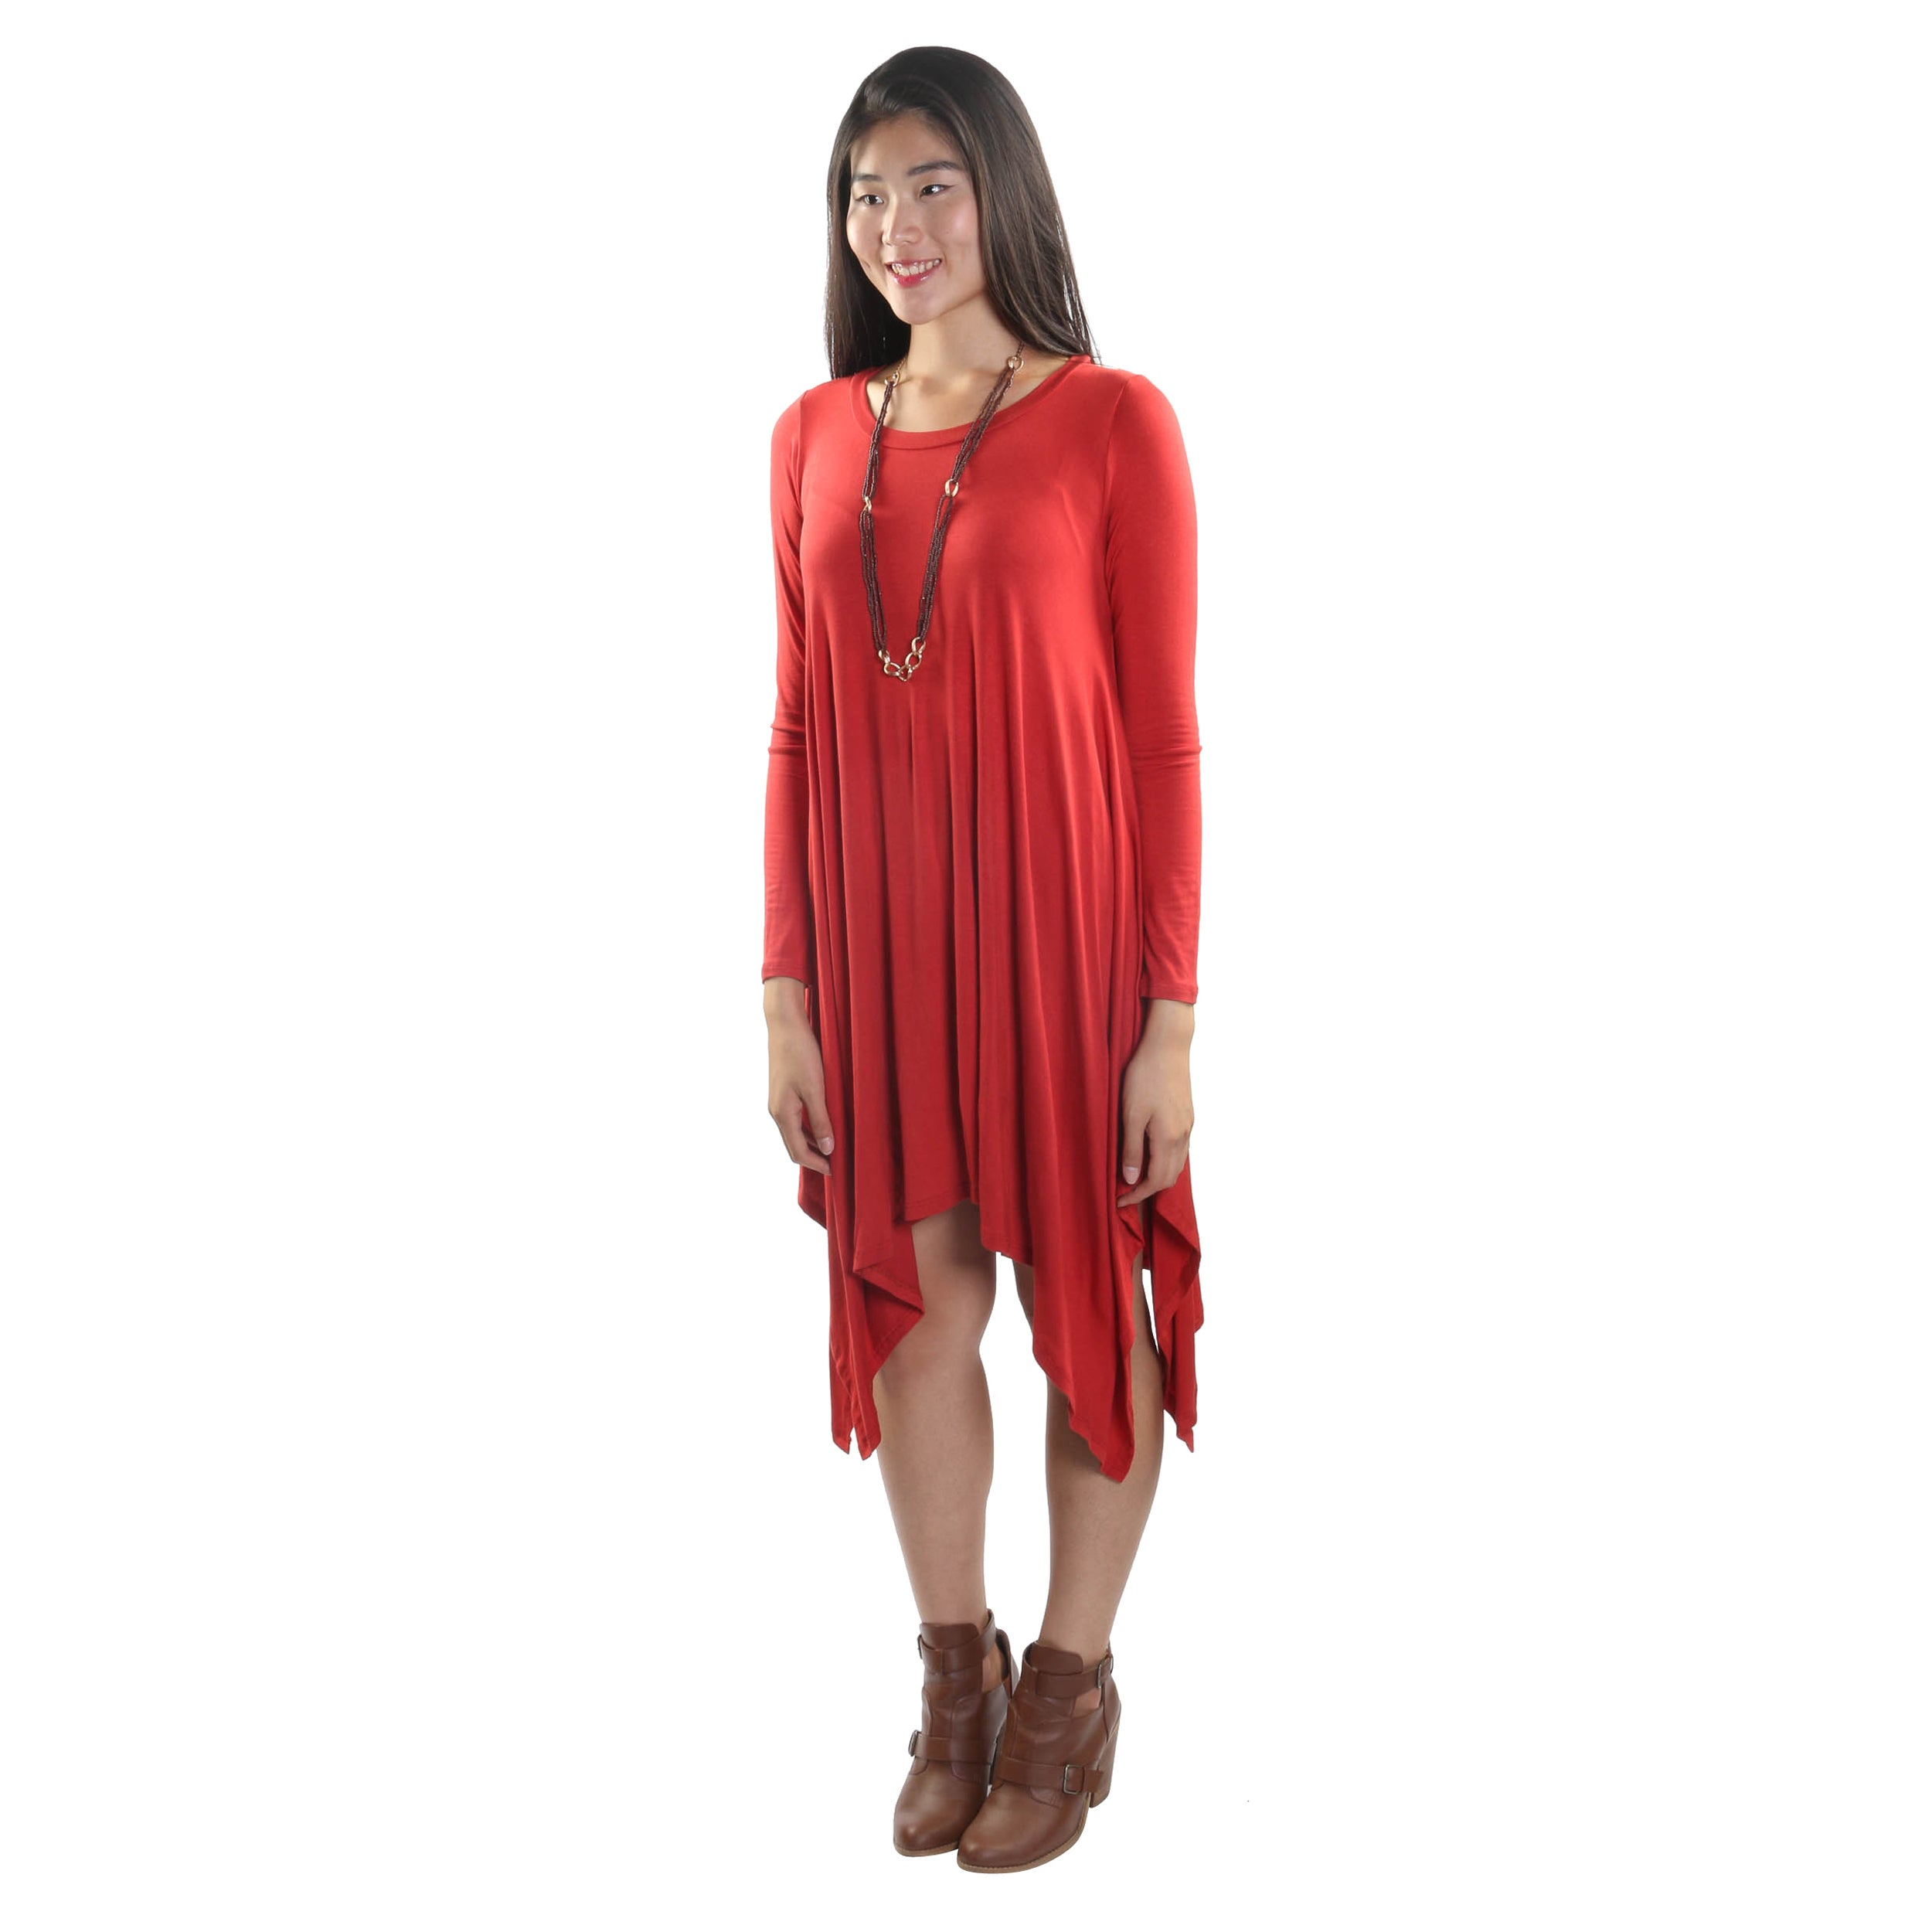 a9940d83b9c1 Shop Hadari Women's Long Sleeve Round Neck Dress - Free Shipping On Orders  Over $45 - Overstock.com - 12513252